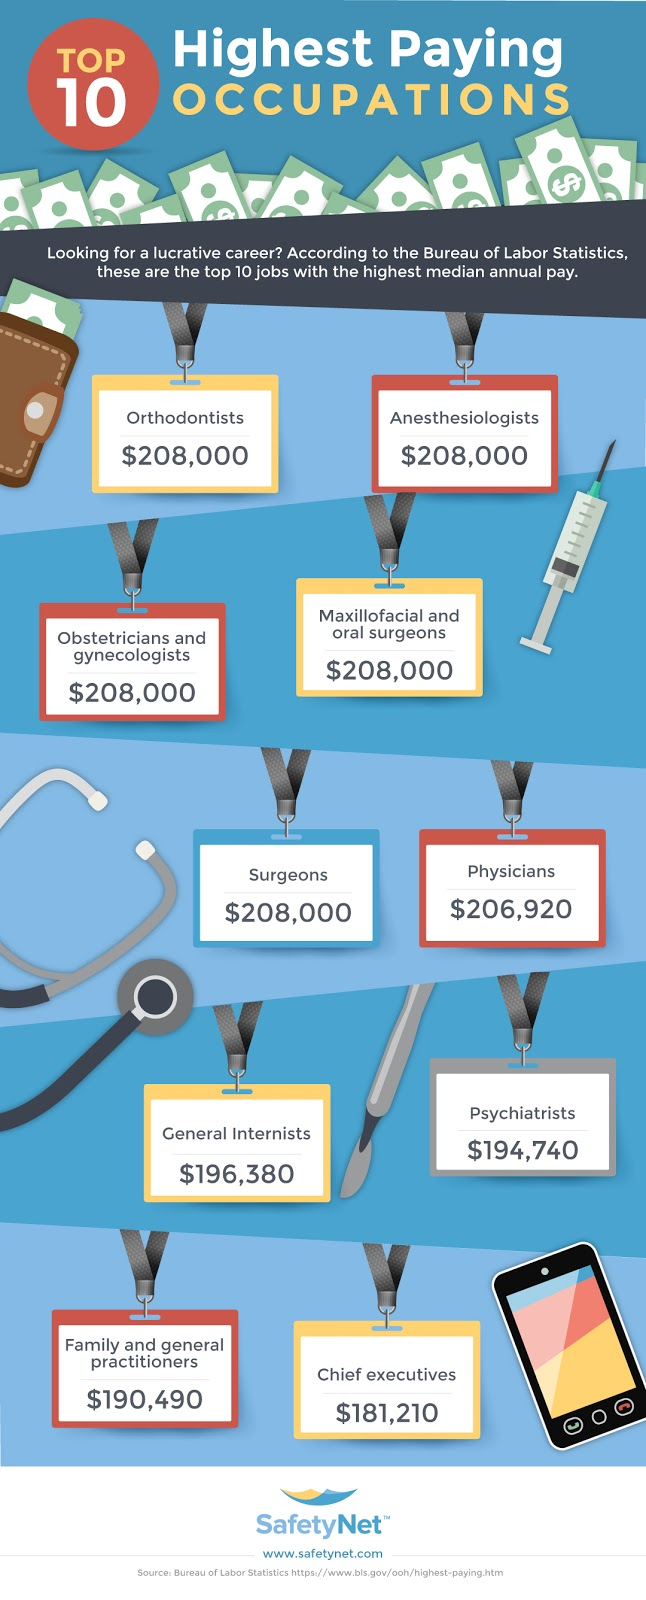 Top 10 Highest Paying Occupations #Infographic